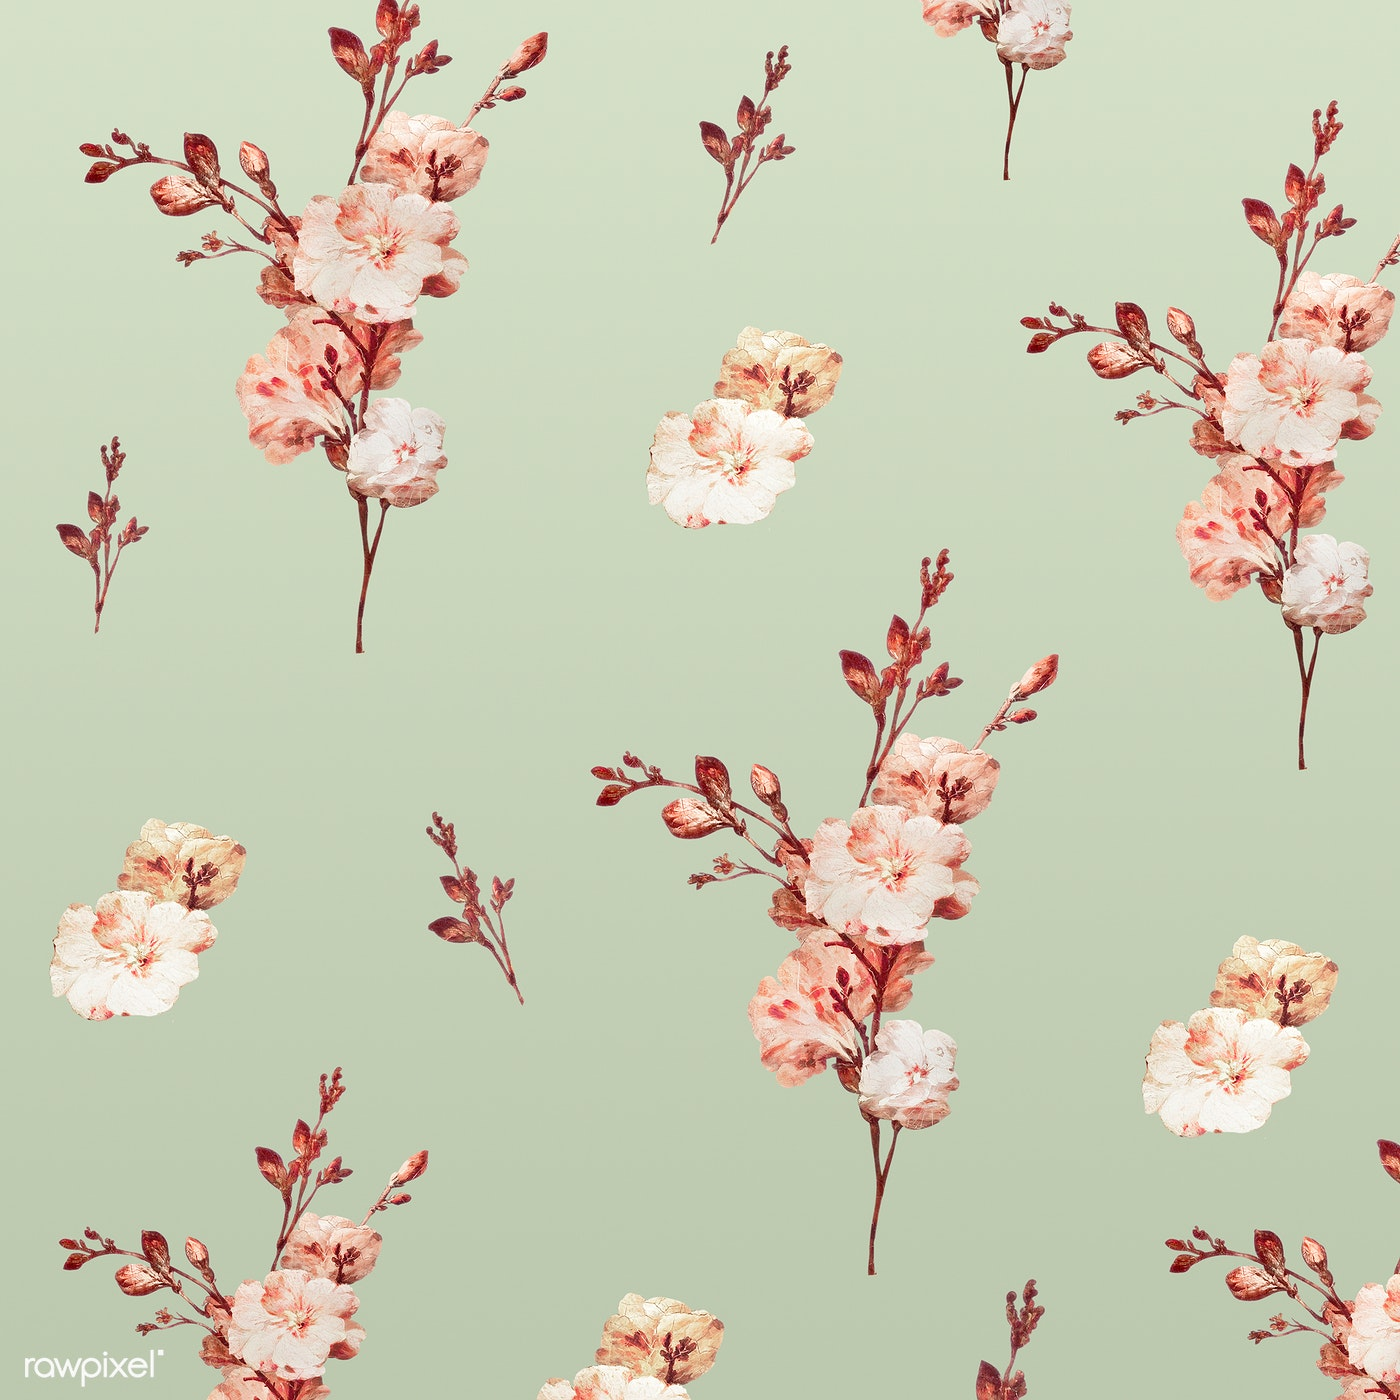 Vintage Floral Seamless Pattern Royalty Free Illustration 2253005